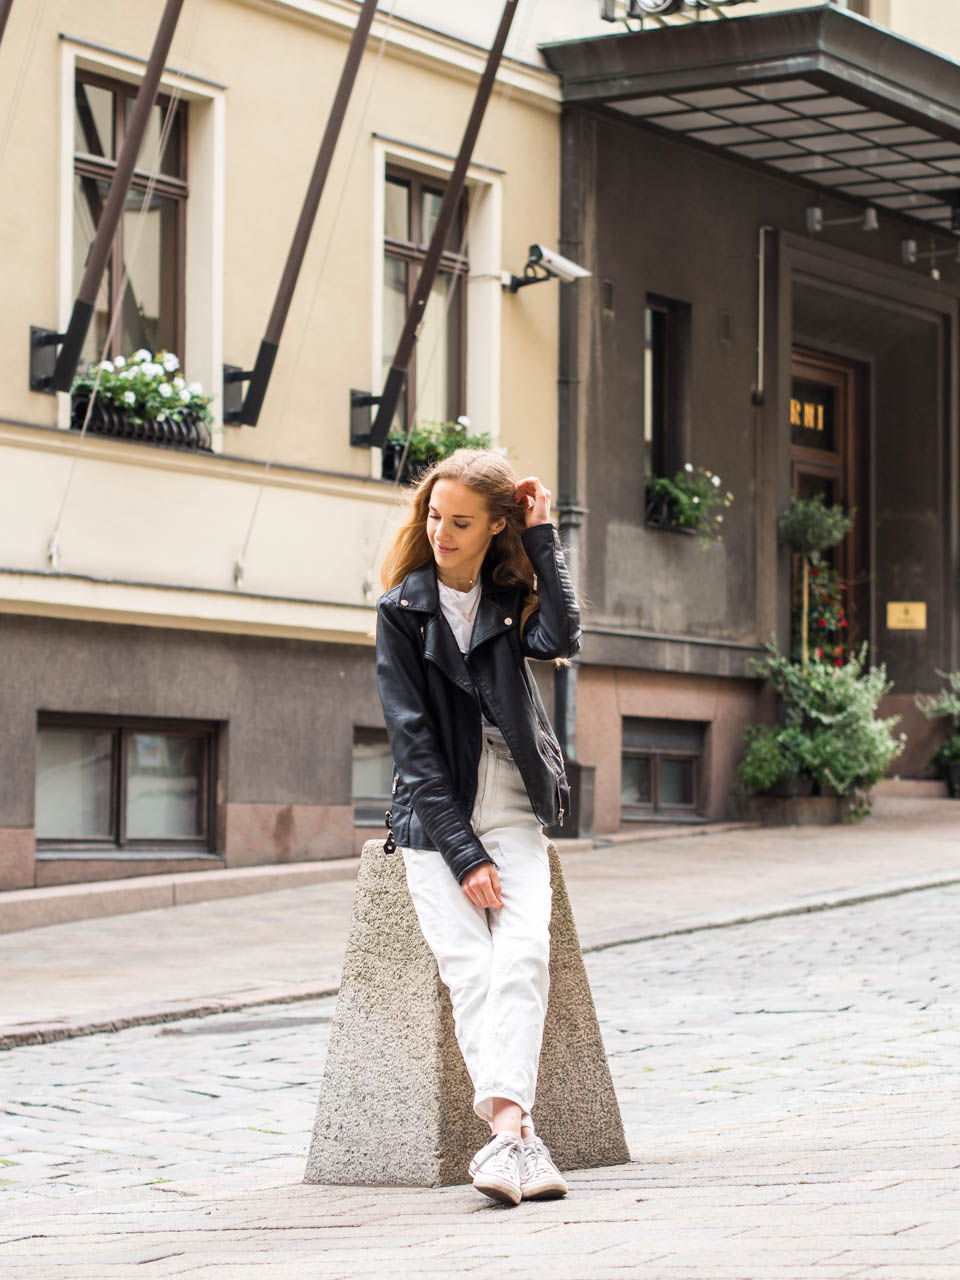 fashion-blogger-autumn-outfit-inspiration-shopping-helsinki-muoti-blogi-syysmuoti